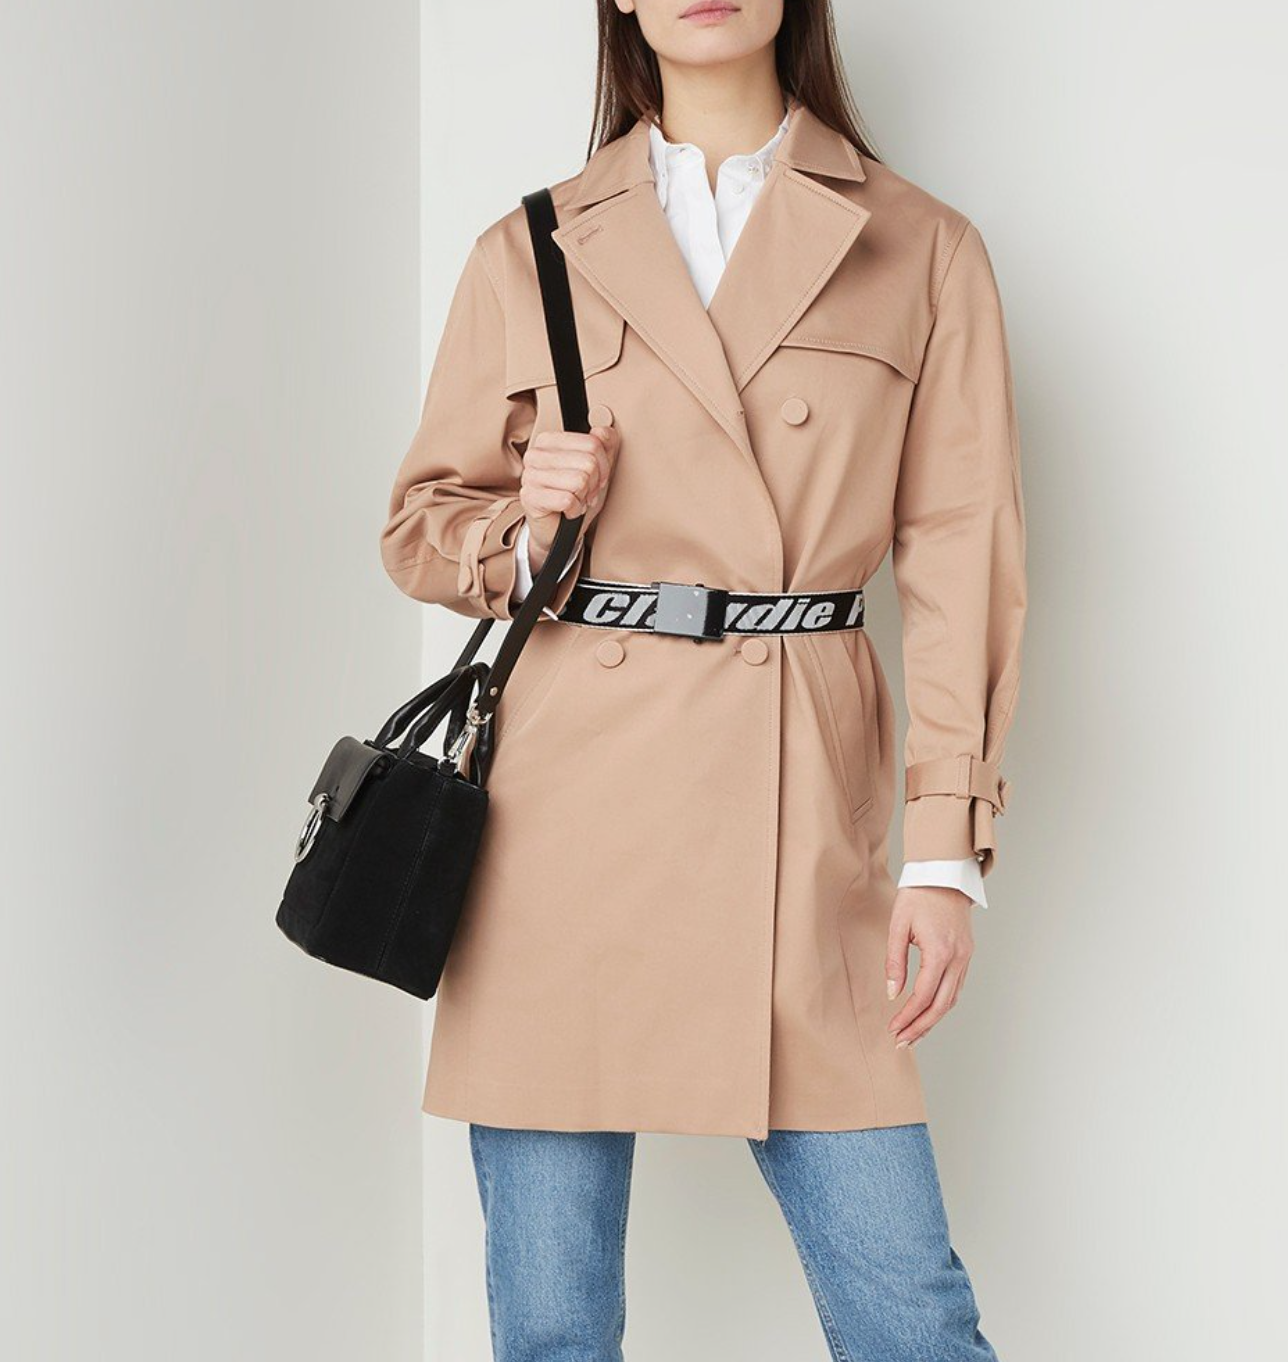 trenchcoat claudie pierlot